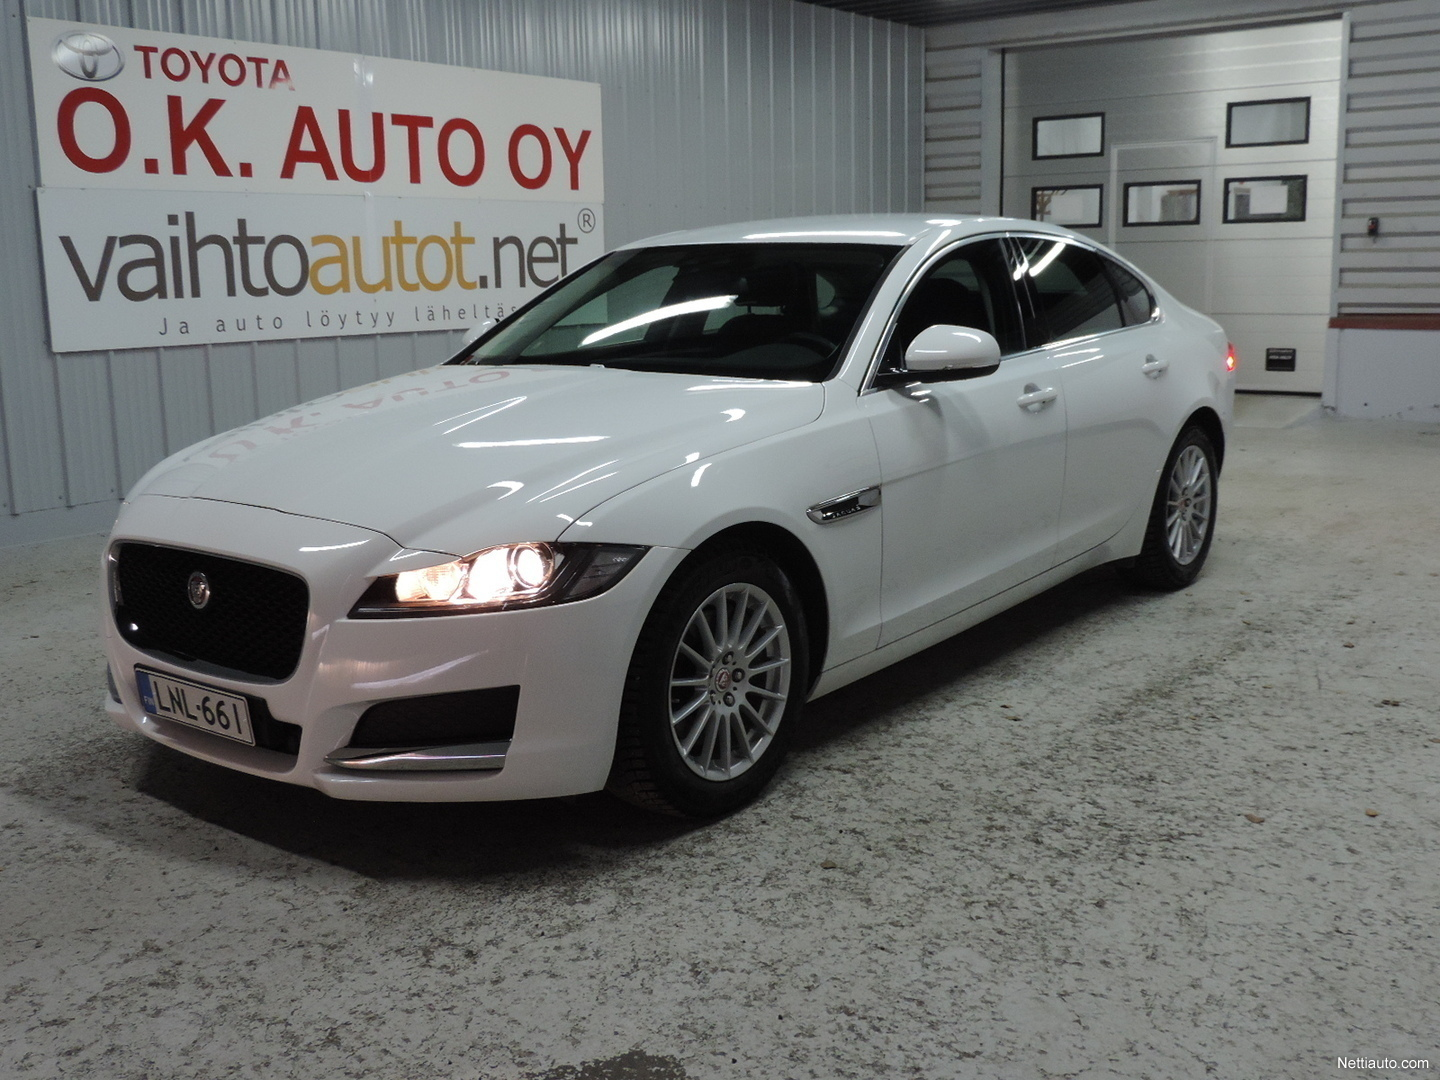 jaguar xf e performance pure a porrasper 2016 vaihtoauto nettiauto. Black Bedroom Furniture Sets. Home Design Ideas